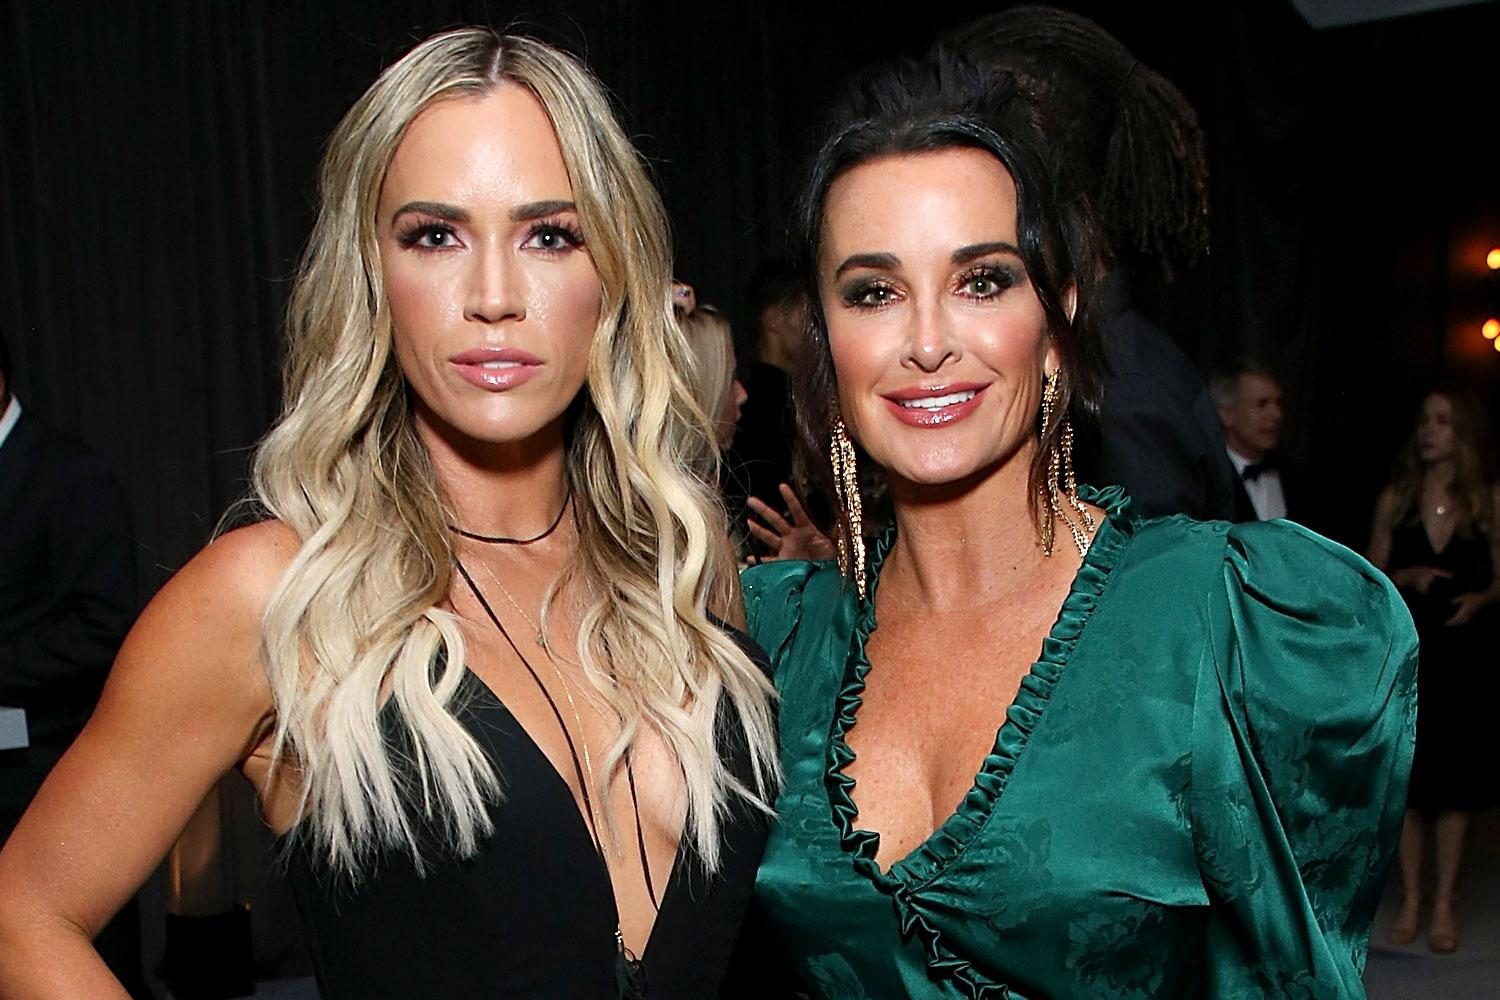 Andy Cohen Hints Teddi Mellencamp And Kyle Richards Are Being Fired From The RHOBH? - Here's Why Fans Are Convinced After Seeing This Pic!